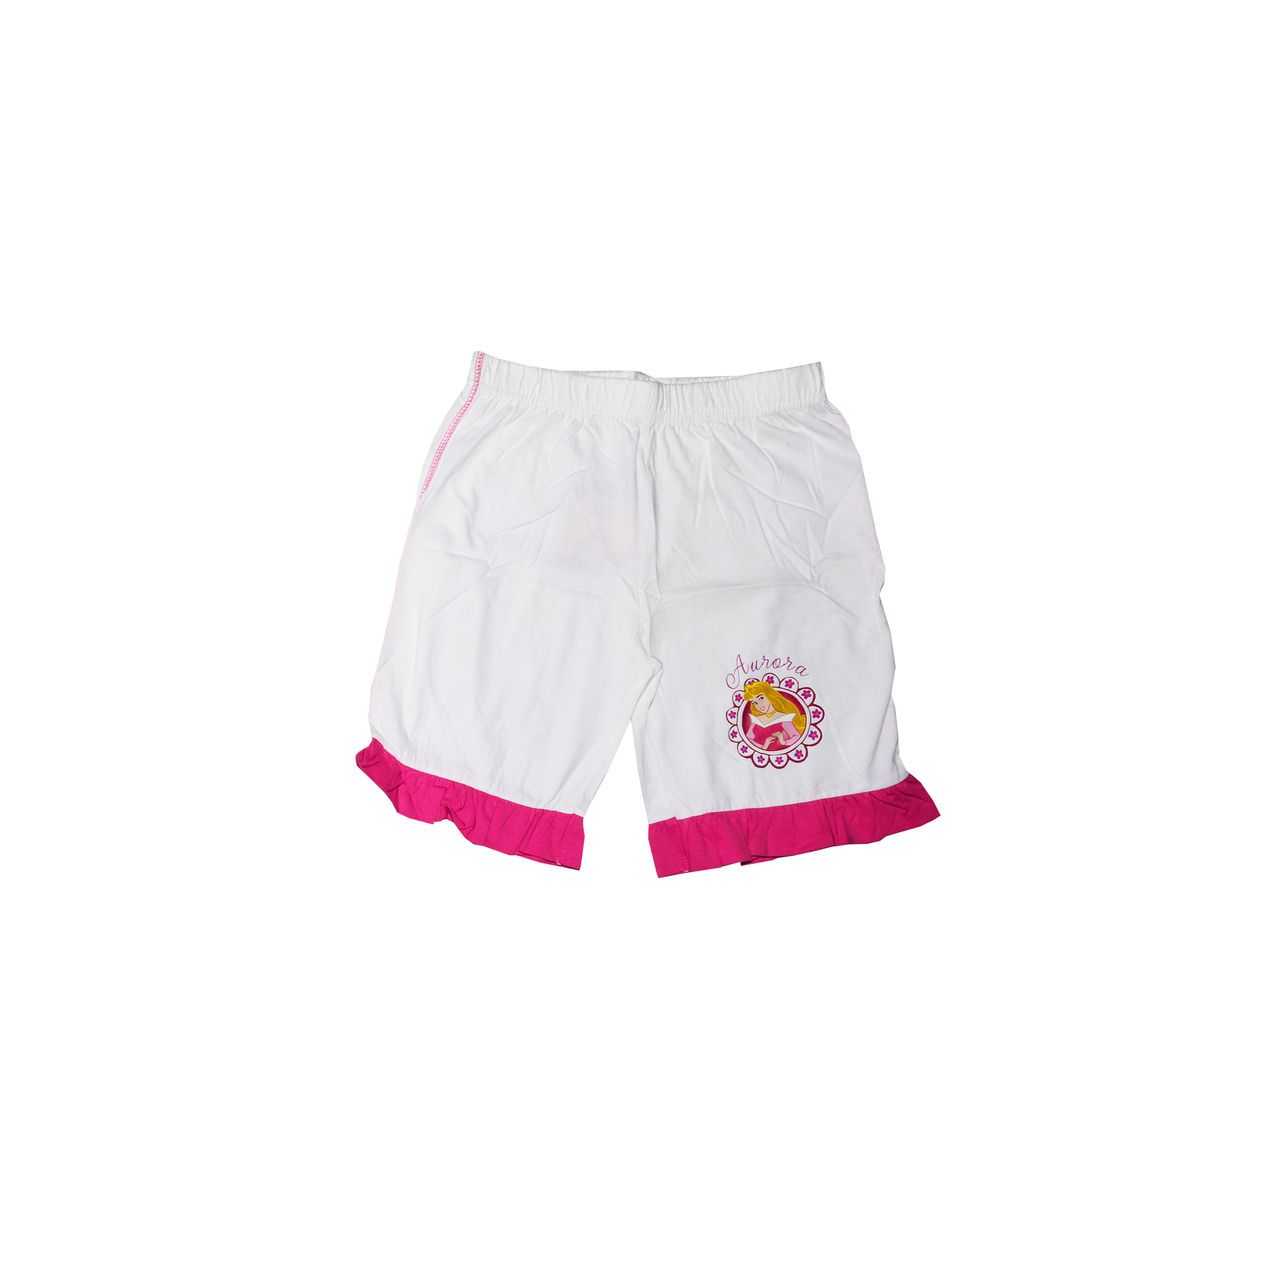 Fubu White Cotton Blend Shorts for Girls